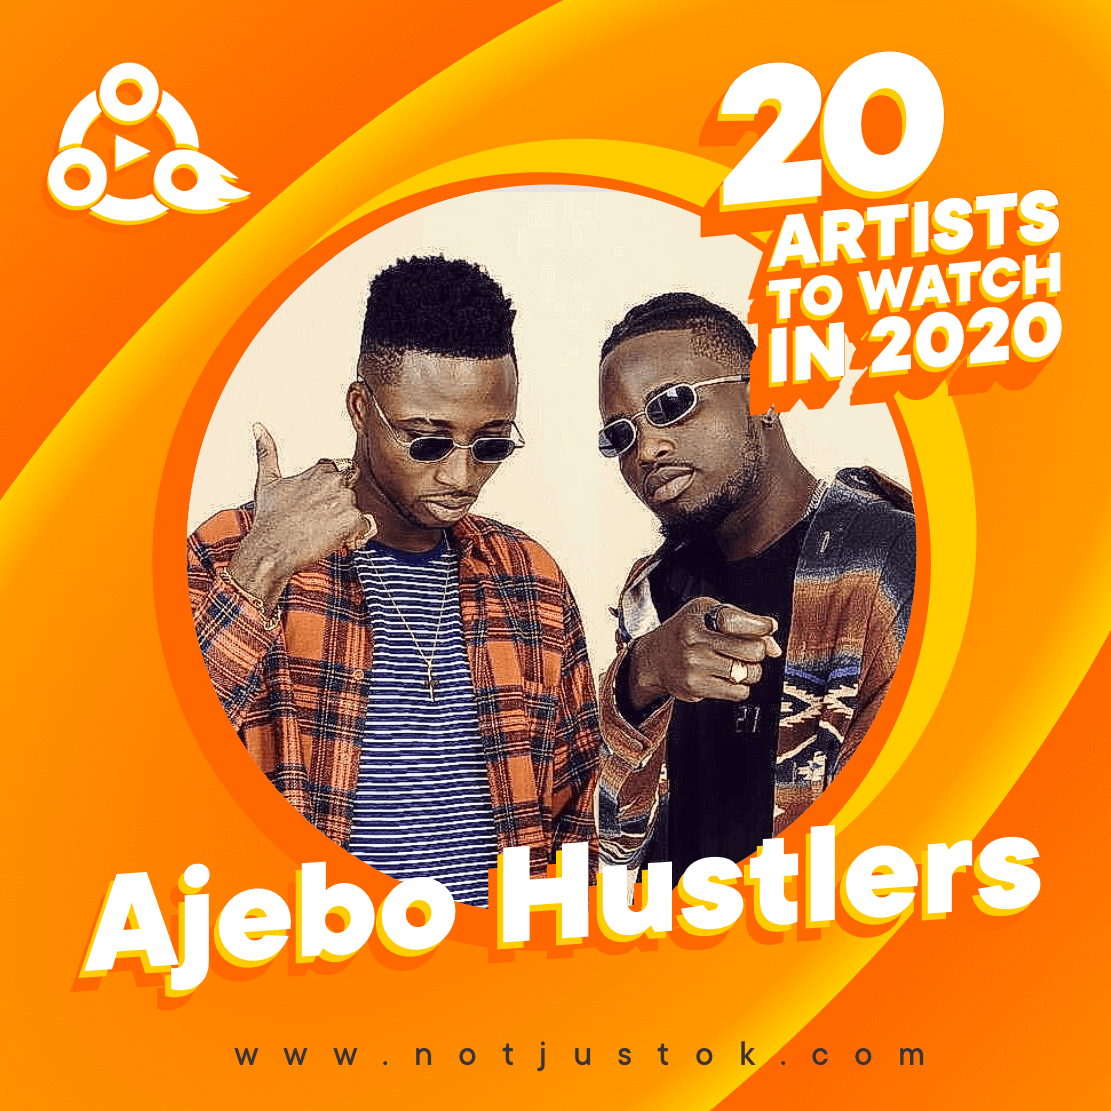 The 20 Artistes To Watch In 2020 - Ajebo Hustlers